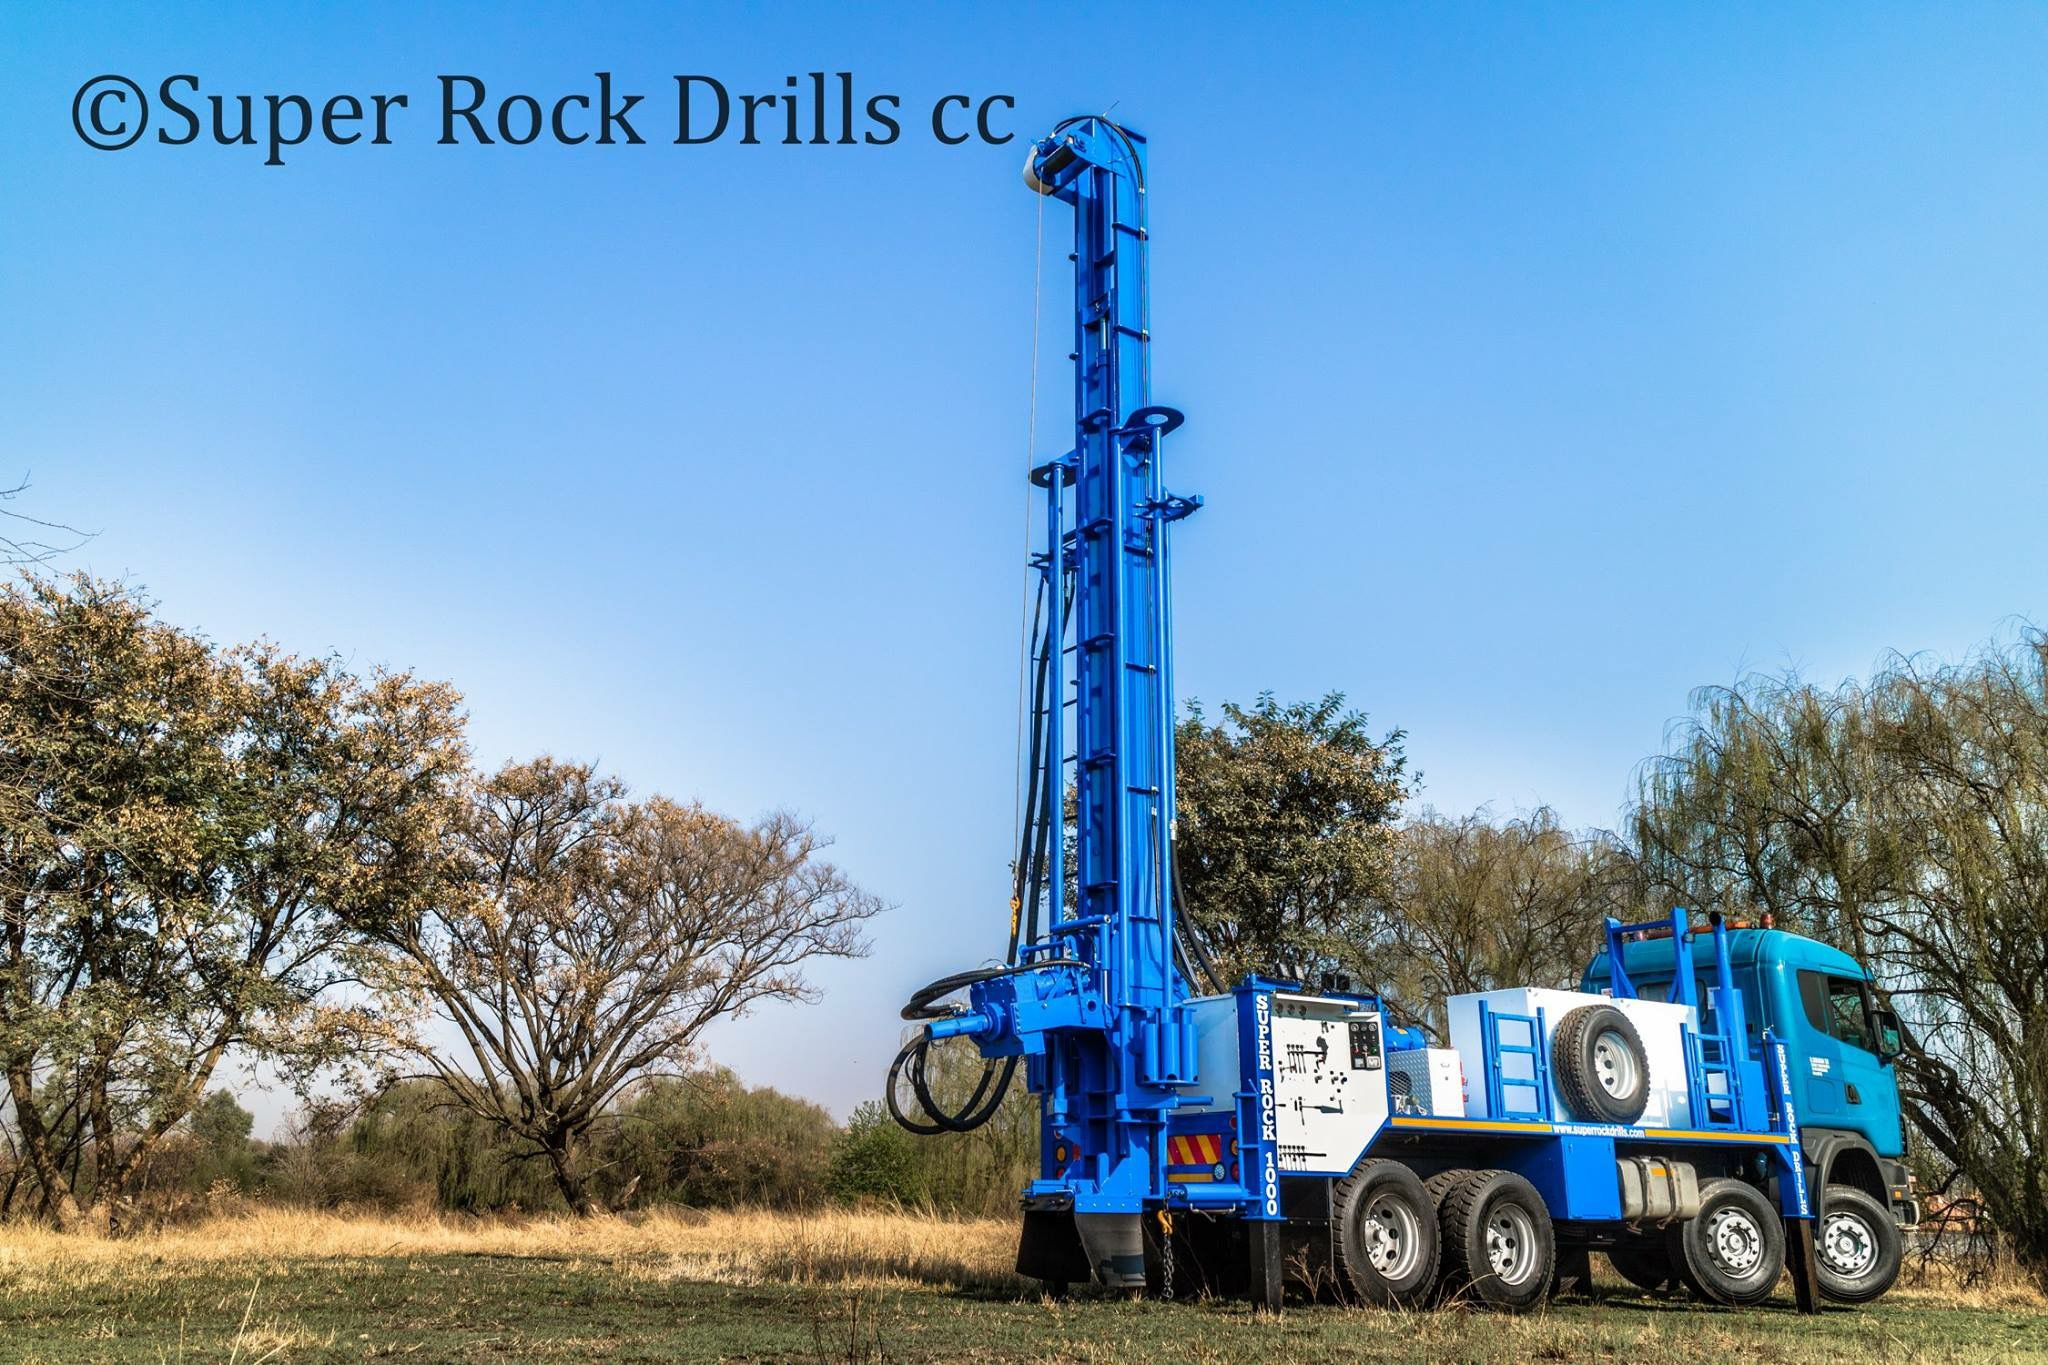 A Super Rock 1000 Water Well Drill Rig With Images Water Well Drilling Drilling Rig Drilling Machine